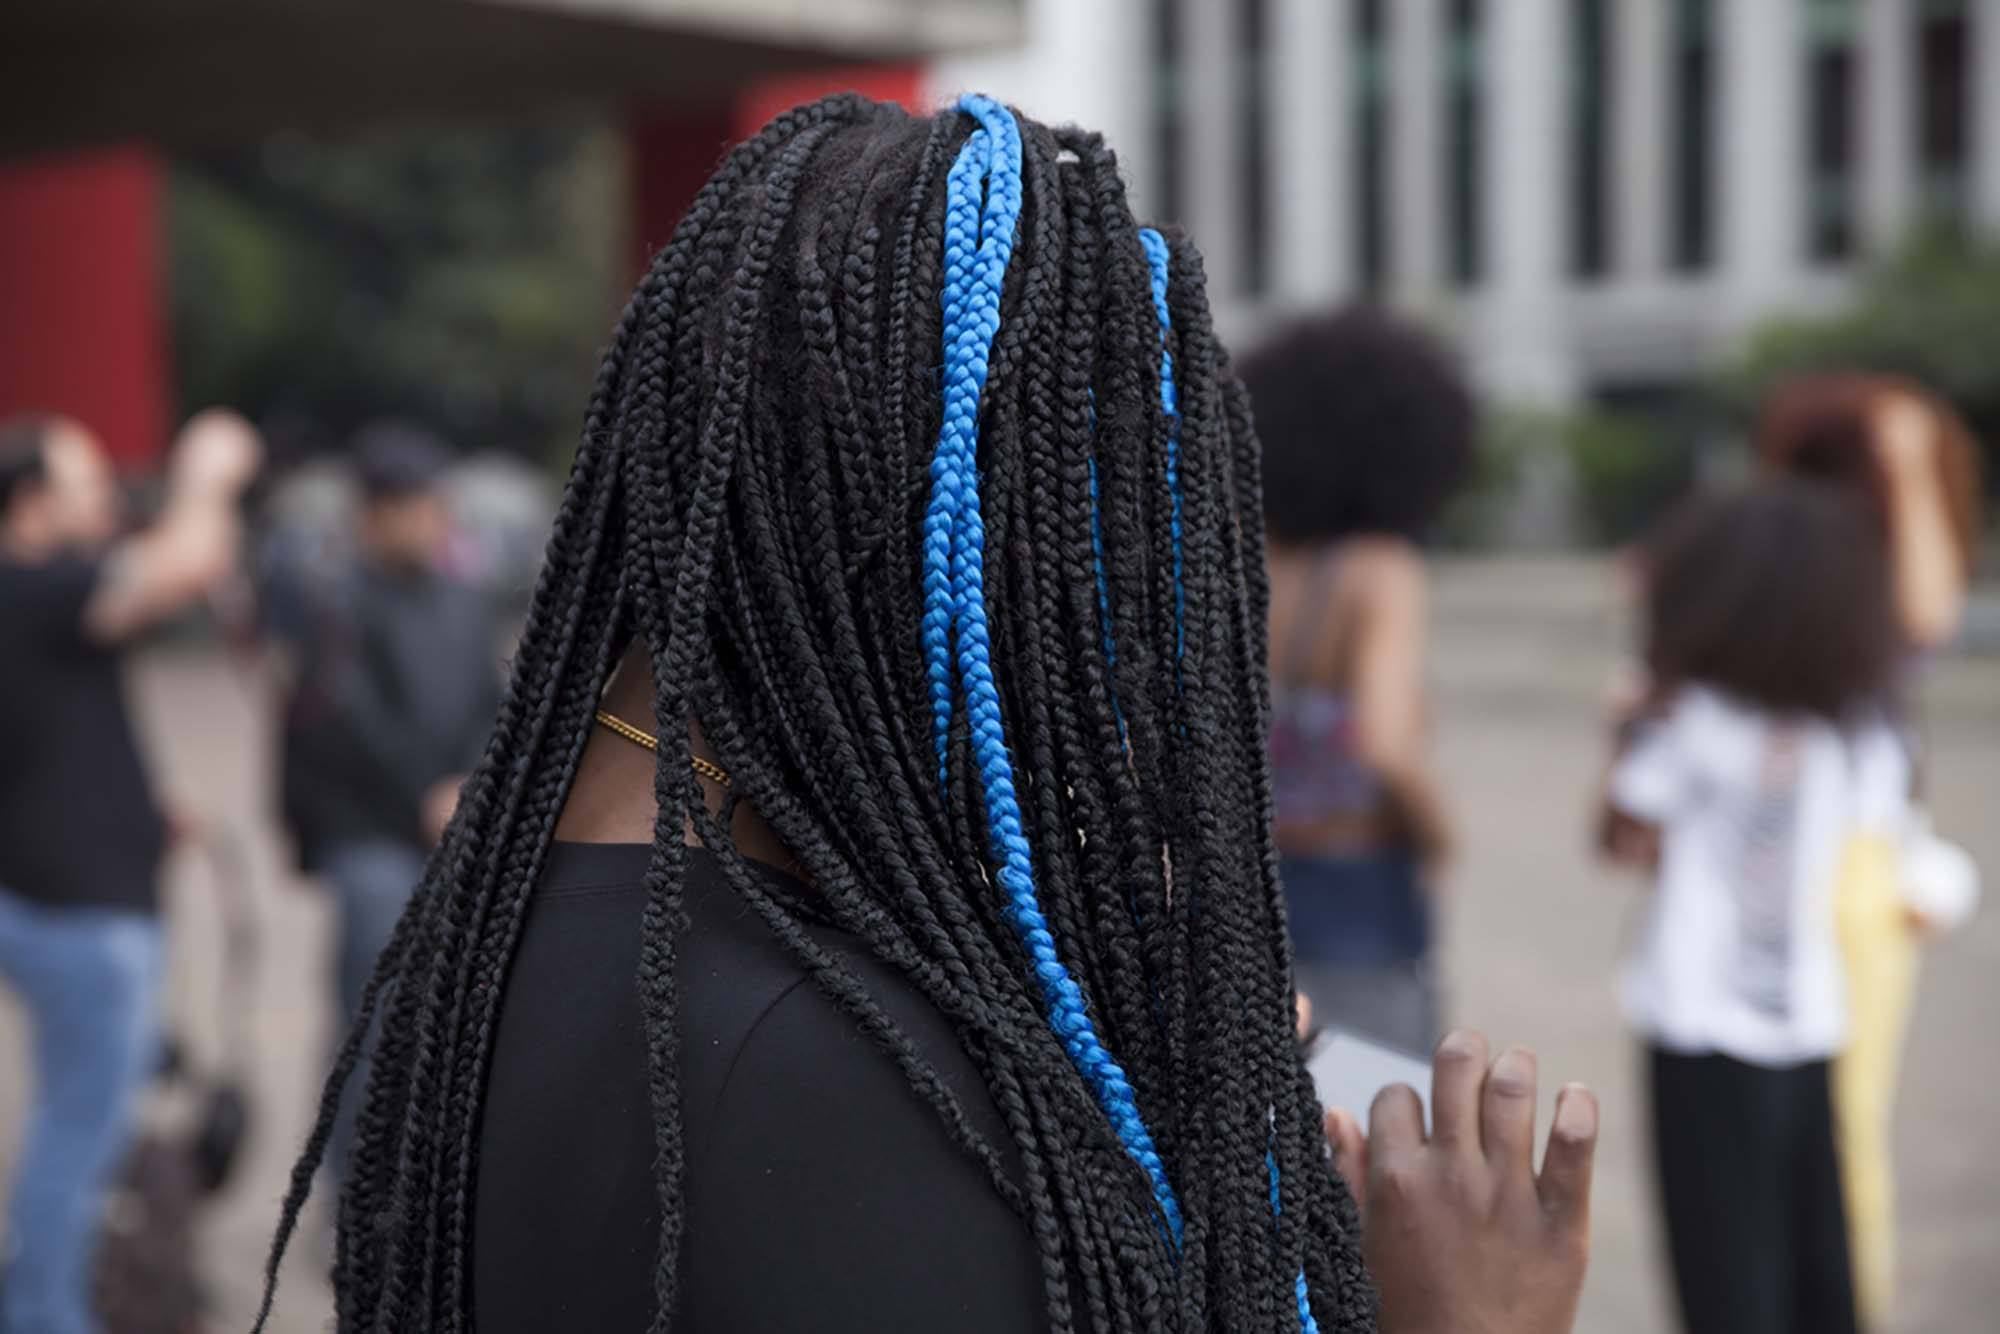 box braid hairstyle with blue streak